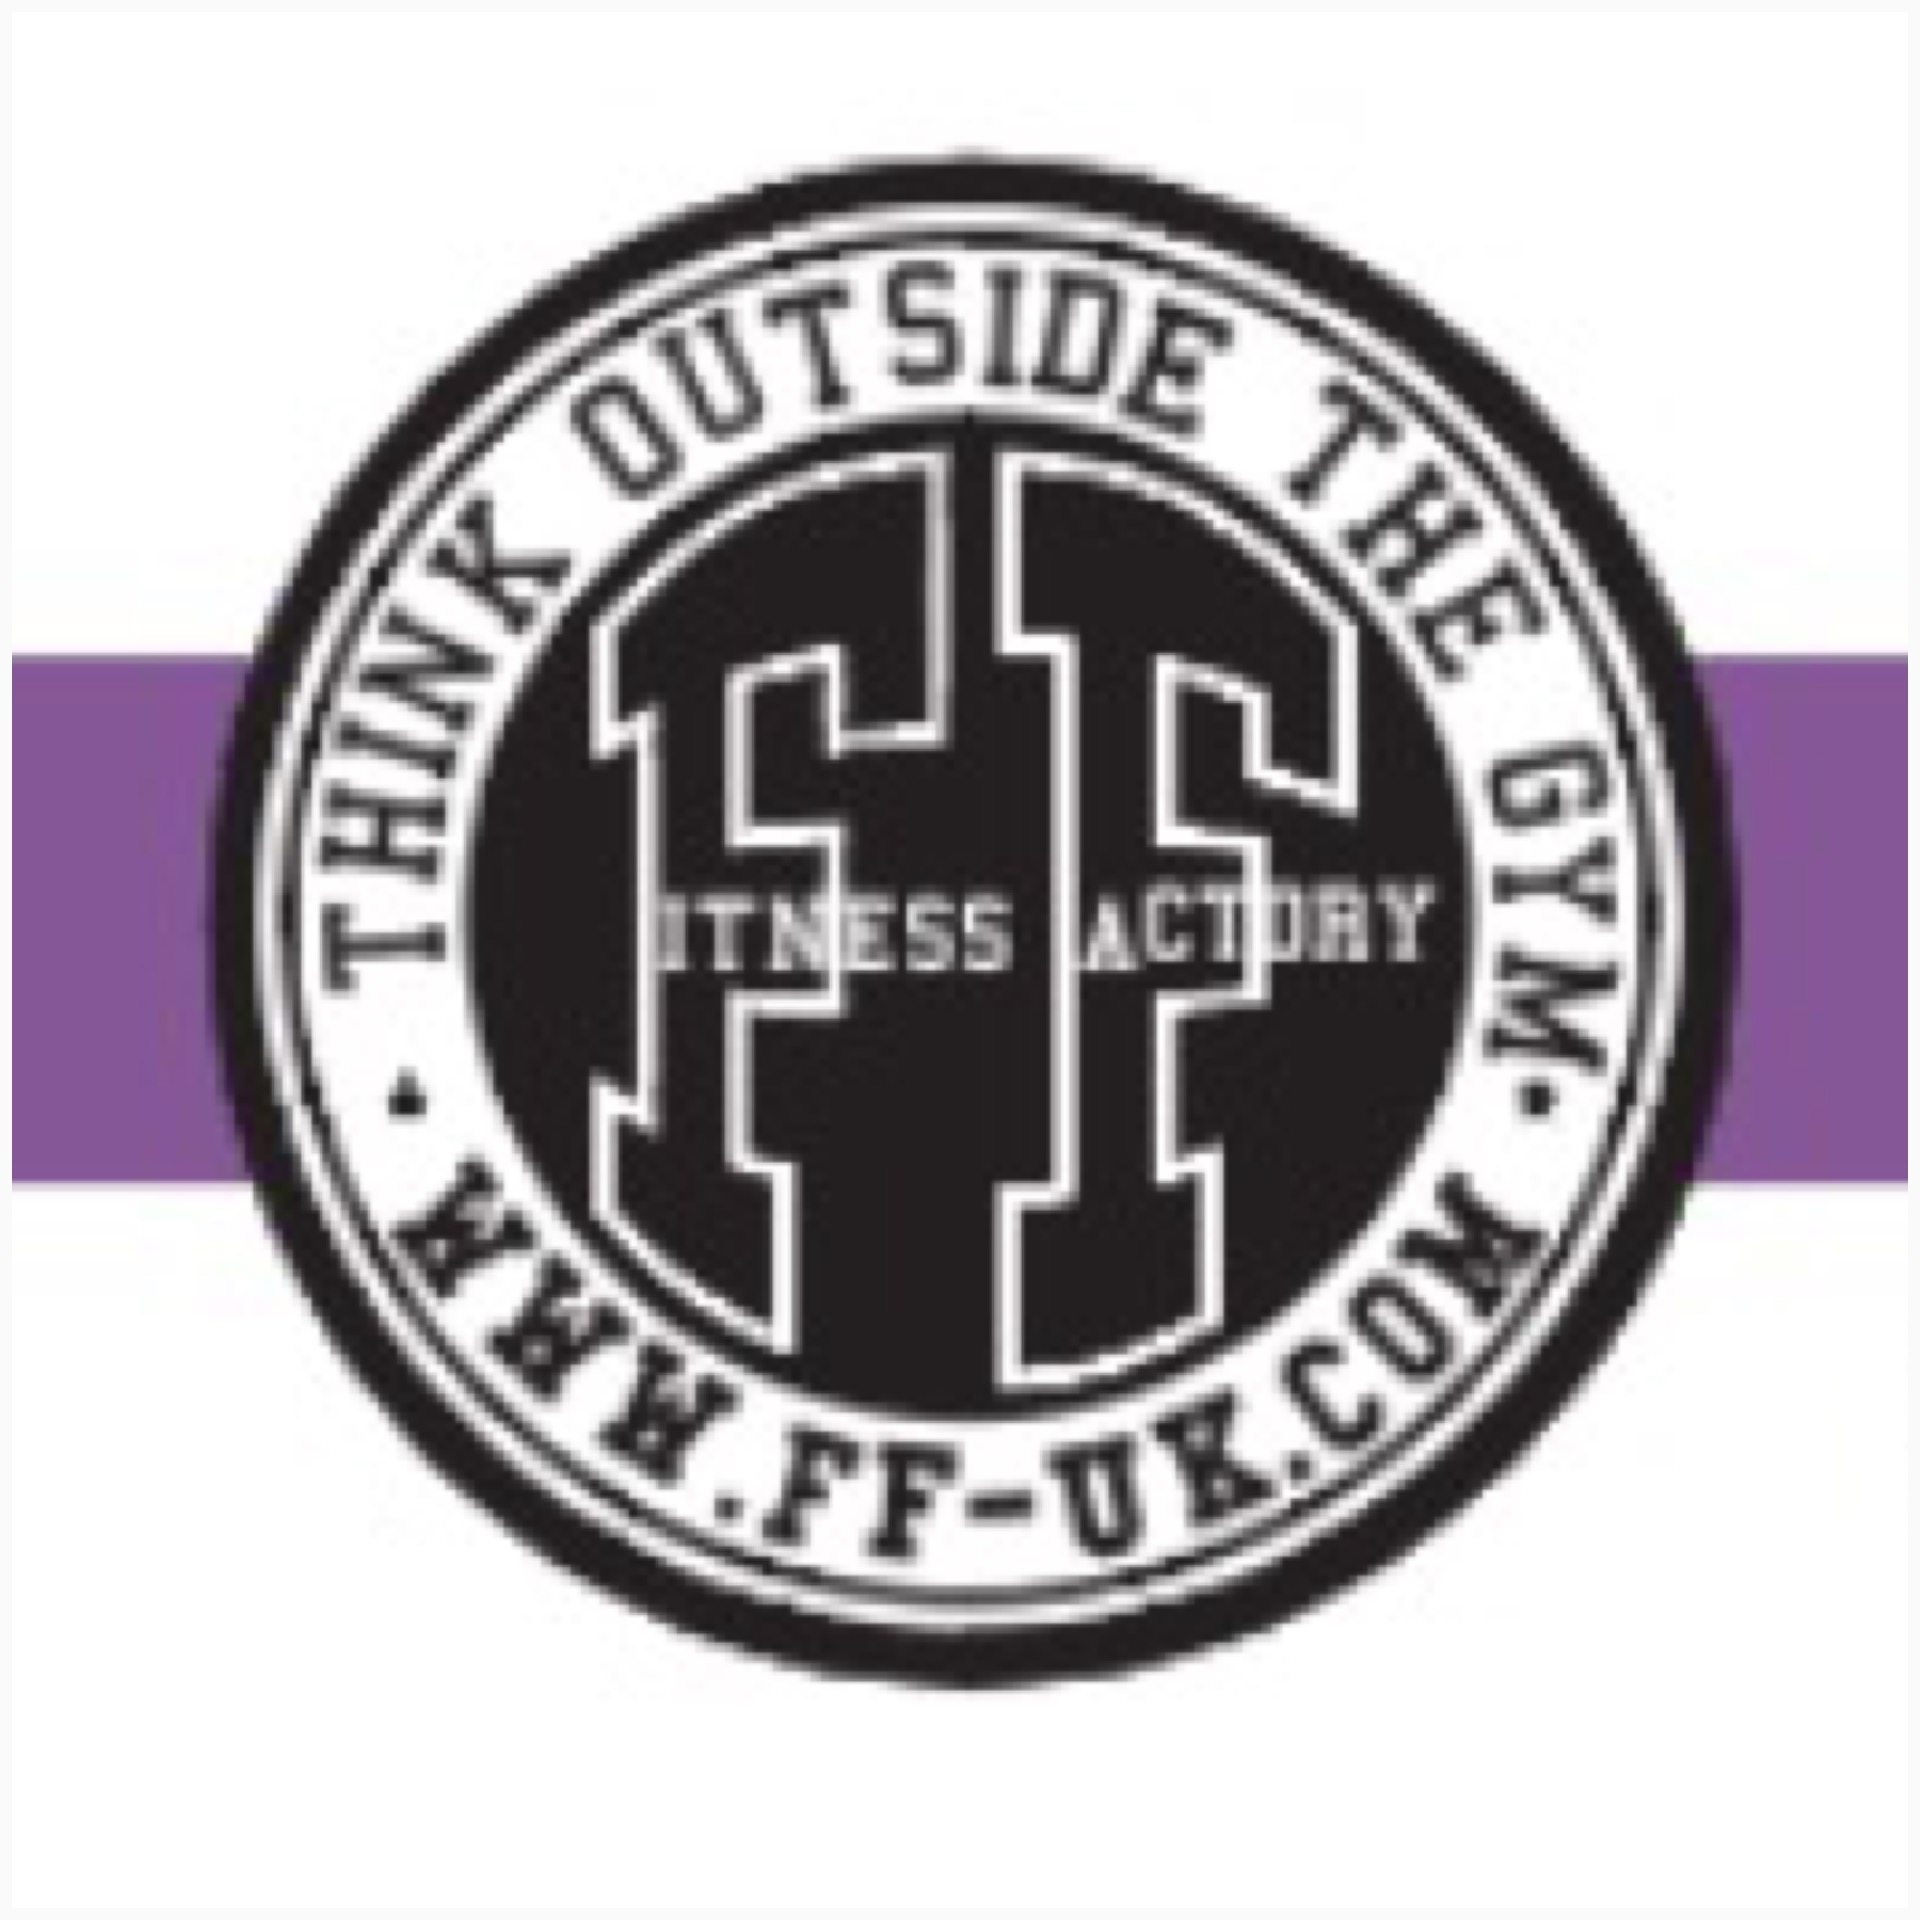 Fitness Factory UK